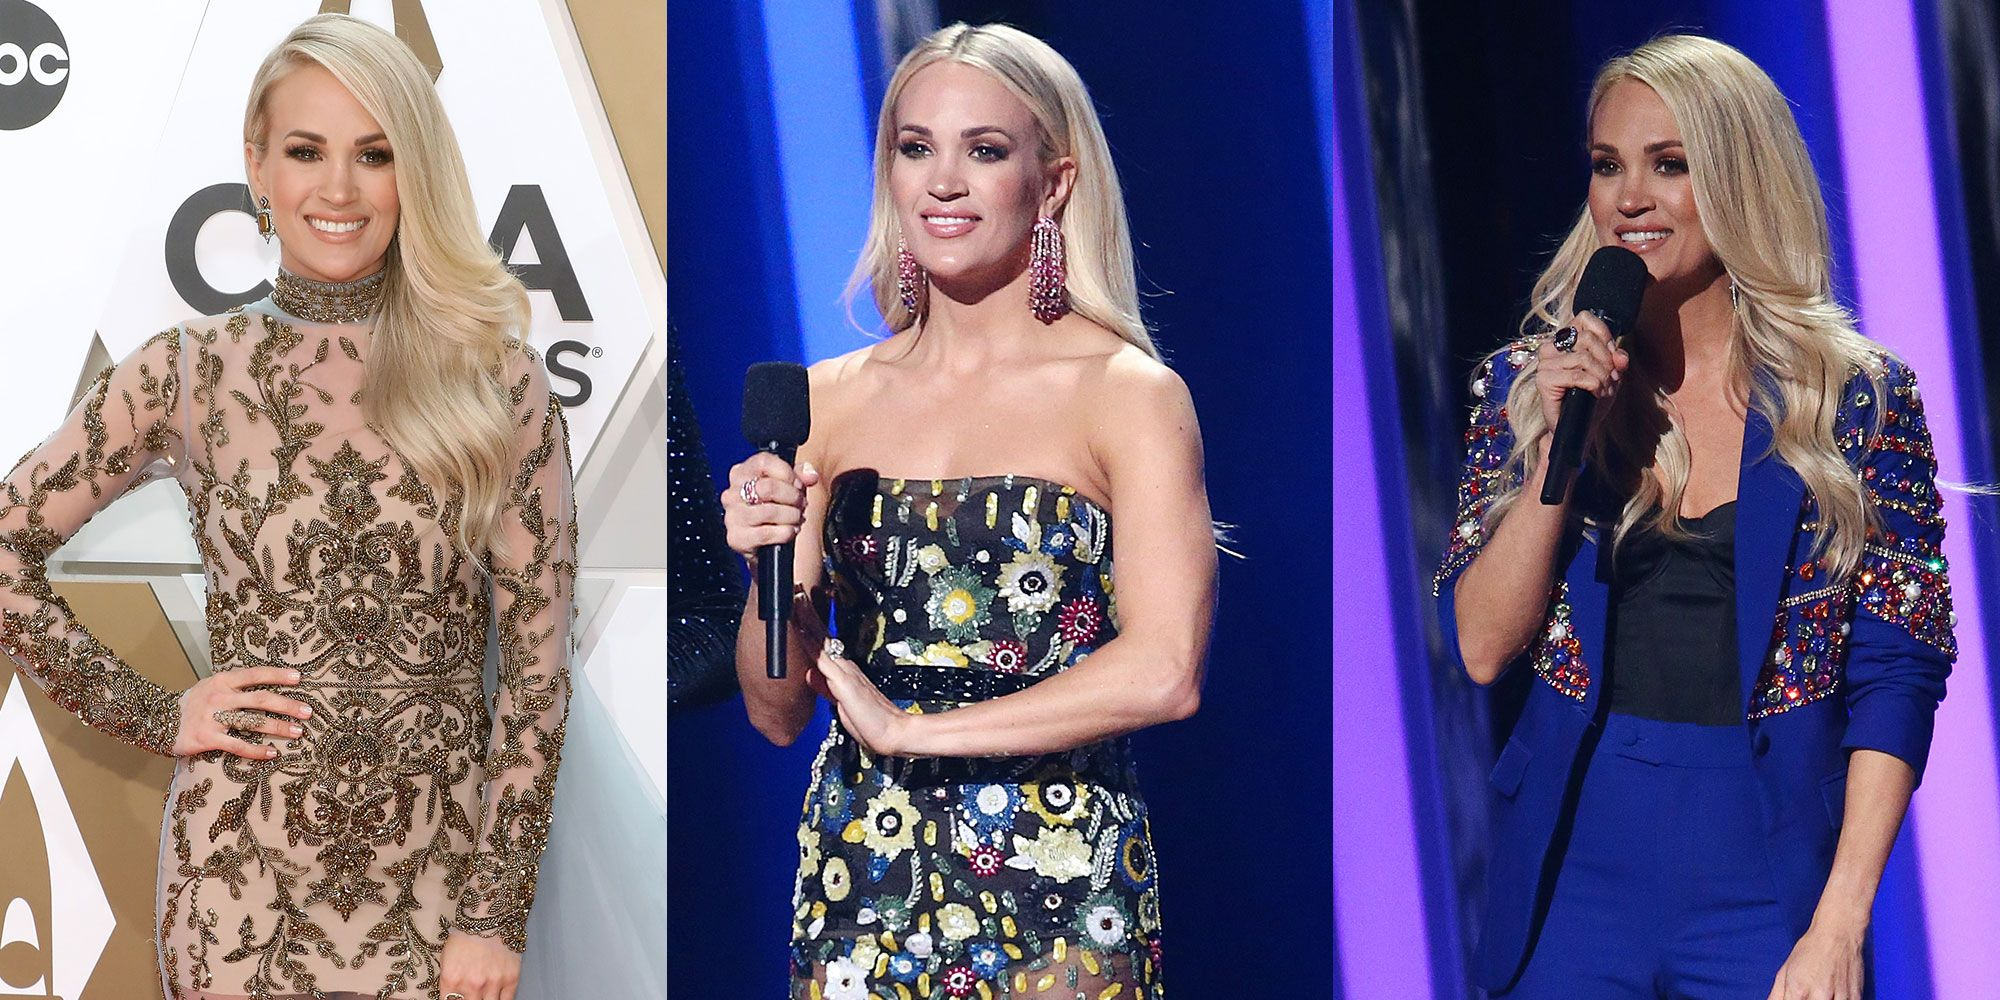 Carrie Underwood Wears 9 Different Outfits at the CMA Awards